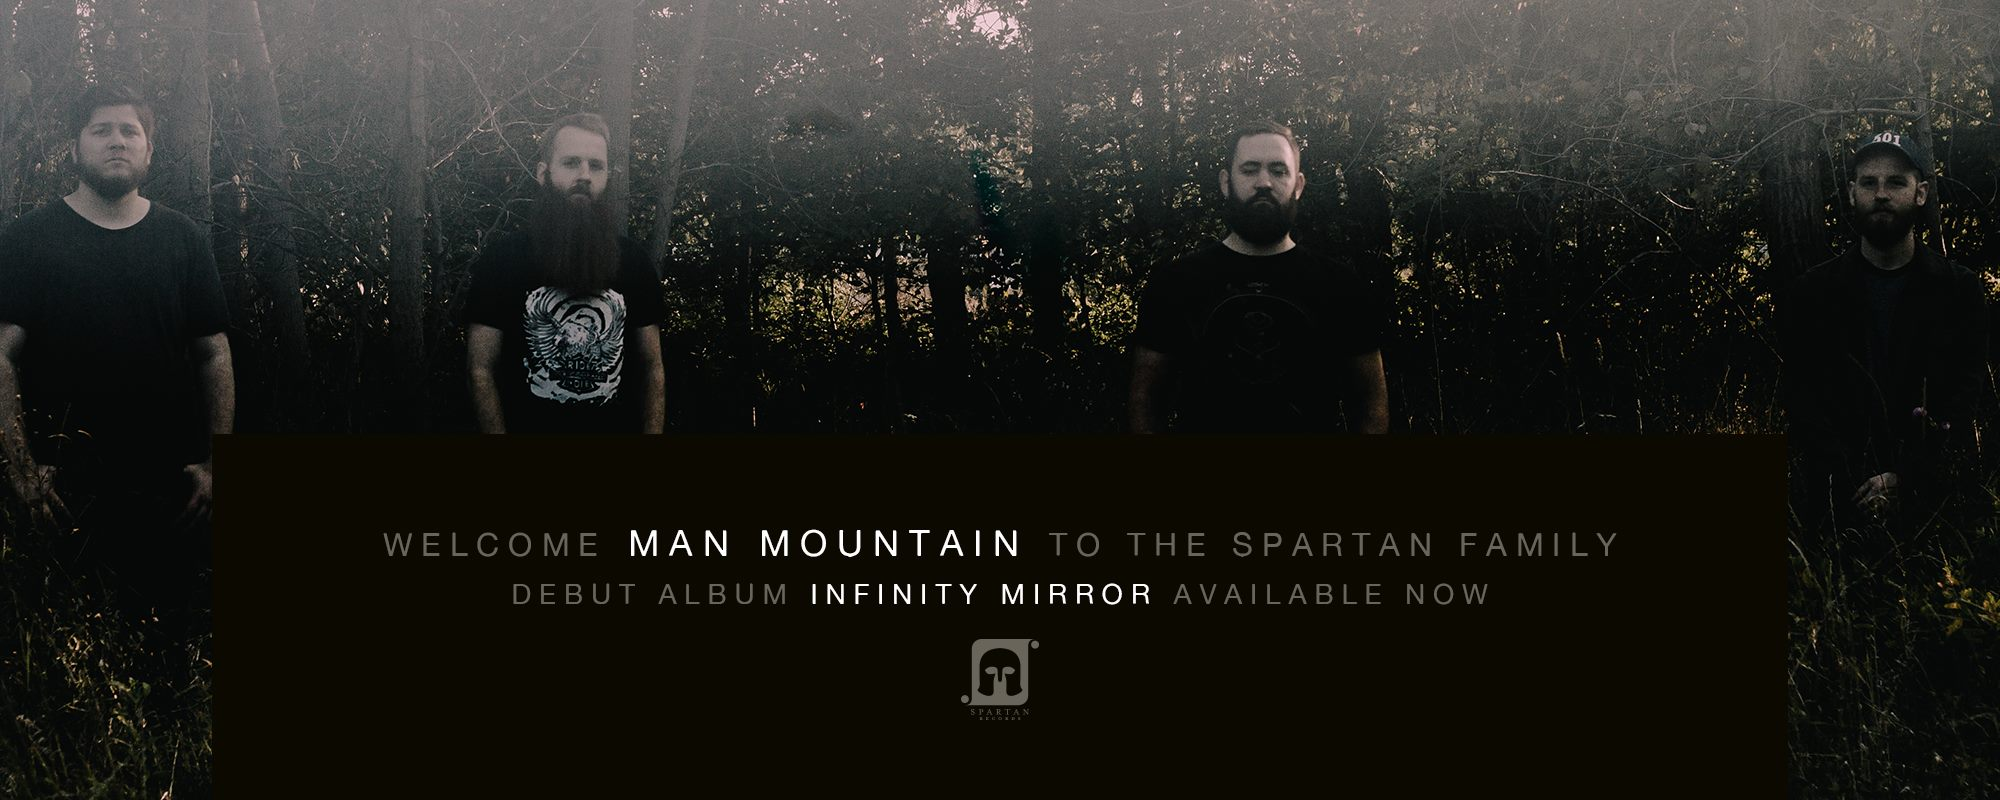 MAN MOUNTAIN_SPARTAN RECORDS_VILE_VILE BLOG_VILE CO_VILE COMPANY_DETROIT.jpg